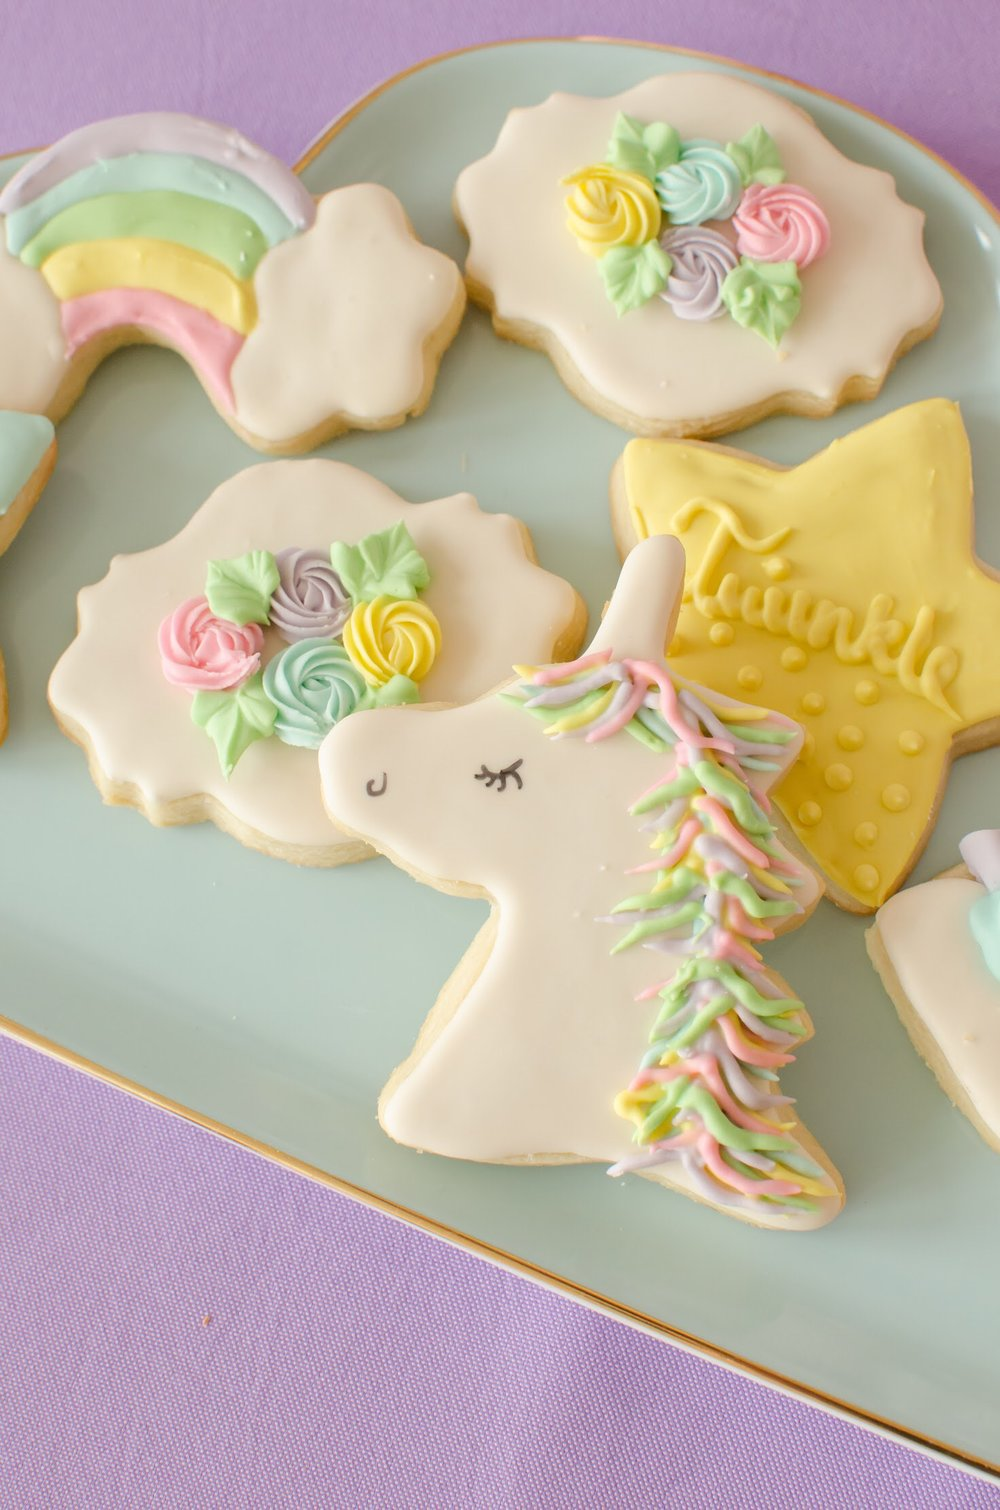 Adorable pastel Unicorn themed cookies for a Sweet Unicorn Birthday Party. See more from this party at Mint Event Design www.minteventdesign.com #unicornparty #unicorncookies #birthdayparty #birthdaypartyideas